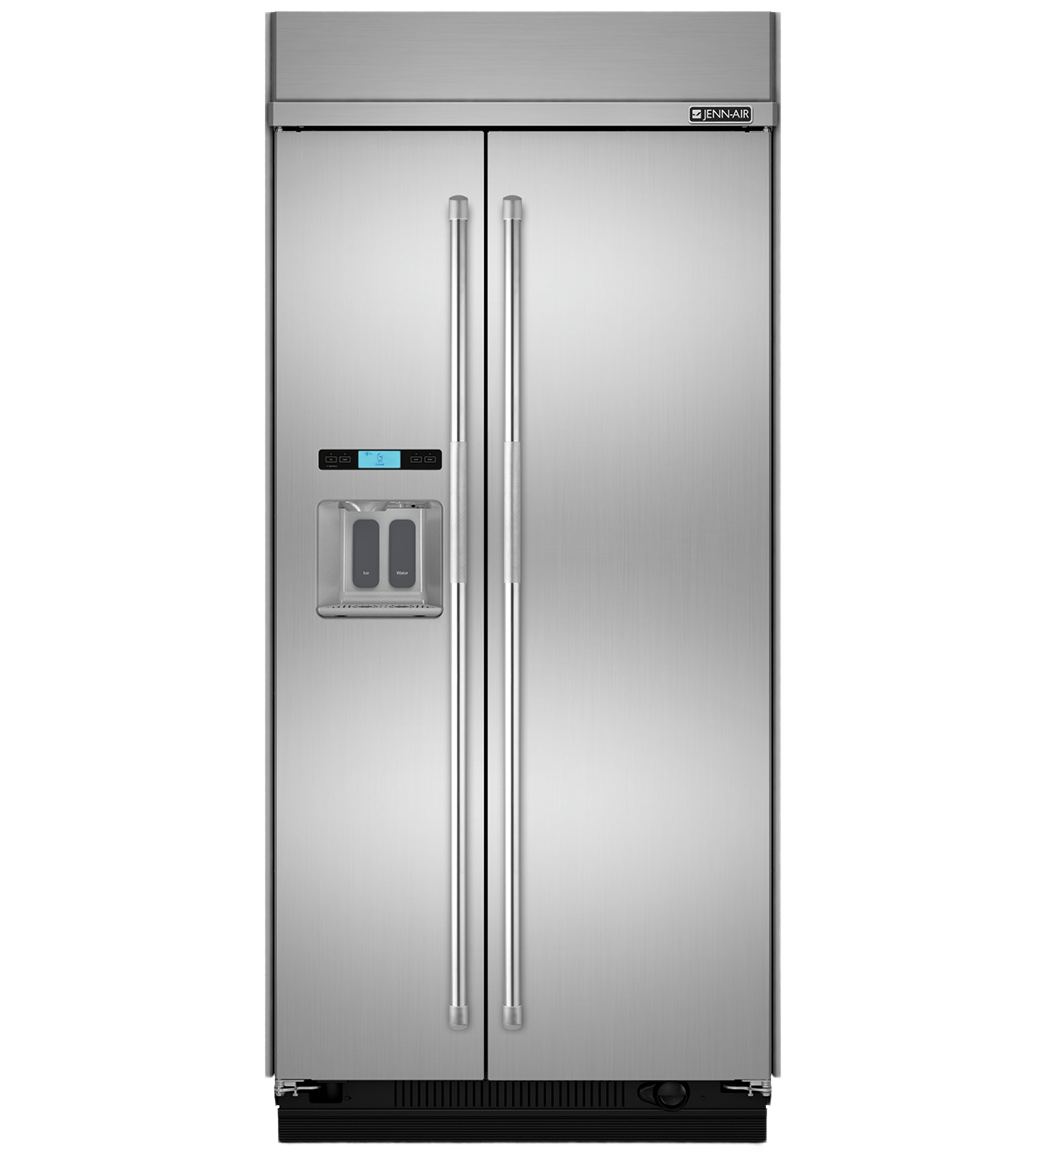 Jenn-Air Refrigerator in Stainless Steel color showcased by Corbeil Electro Store